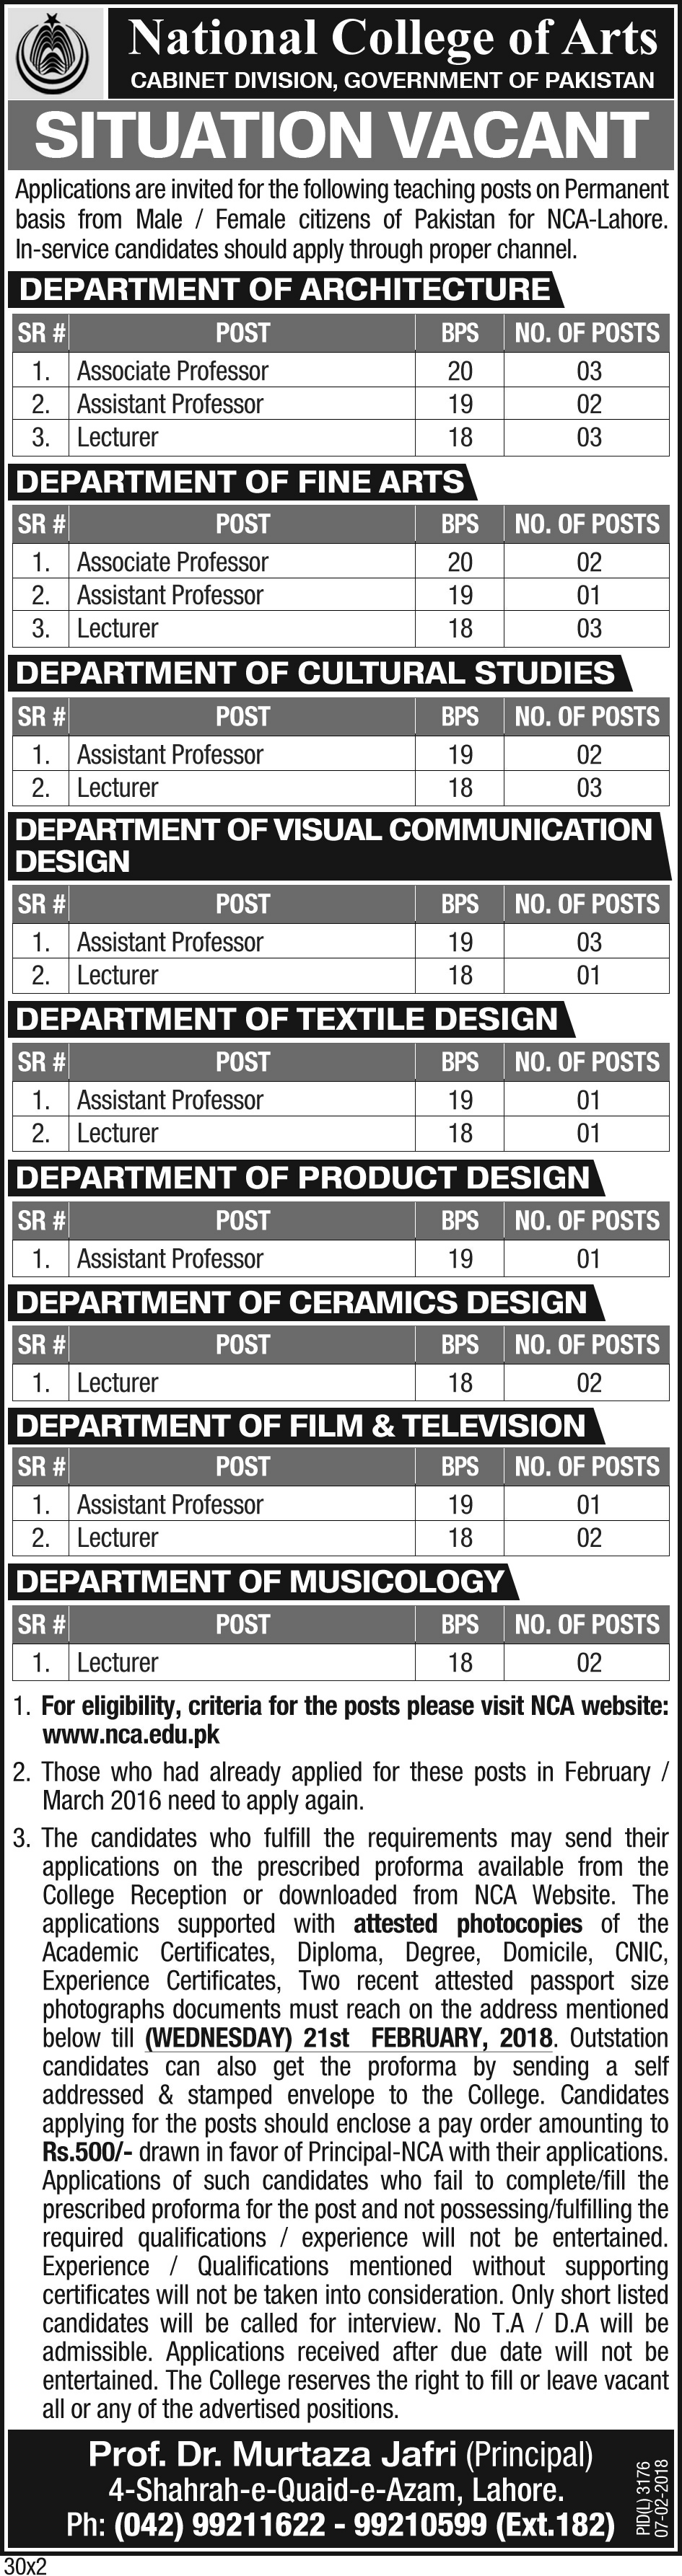 Govt. of Pakistan National College of Arts 33 Jobs 07 February 2018 Daily The News Newspaper